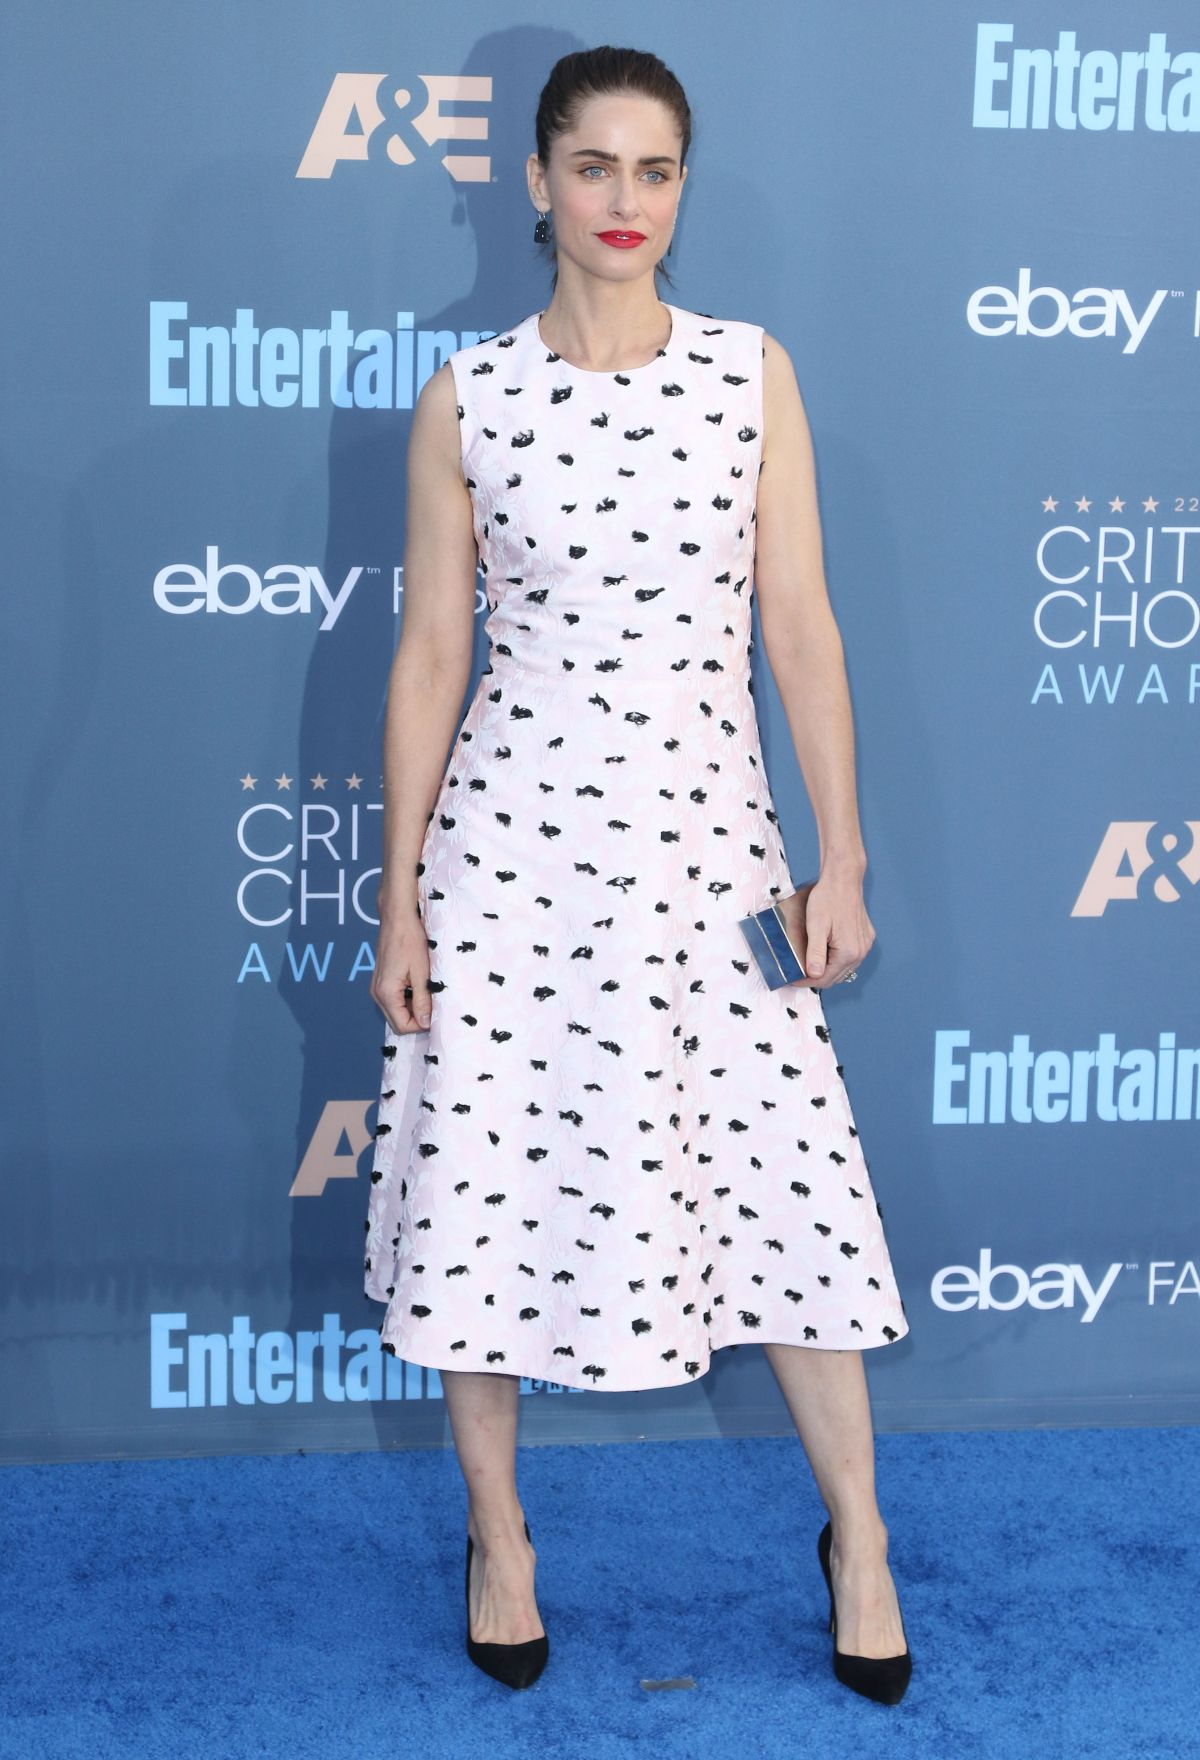 Amanda Peet At The 22nd Annual Critics' Choice Awards in Santa Monica   amanda-peet-at-the-22nd-annual-critics-choice-awards-in-santa-monica-_1